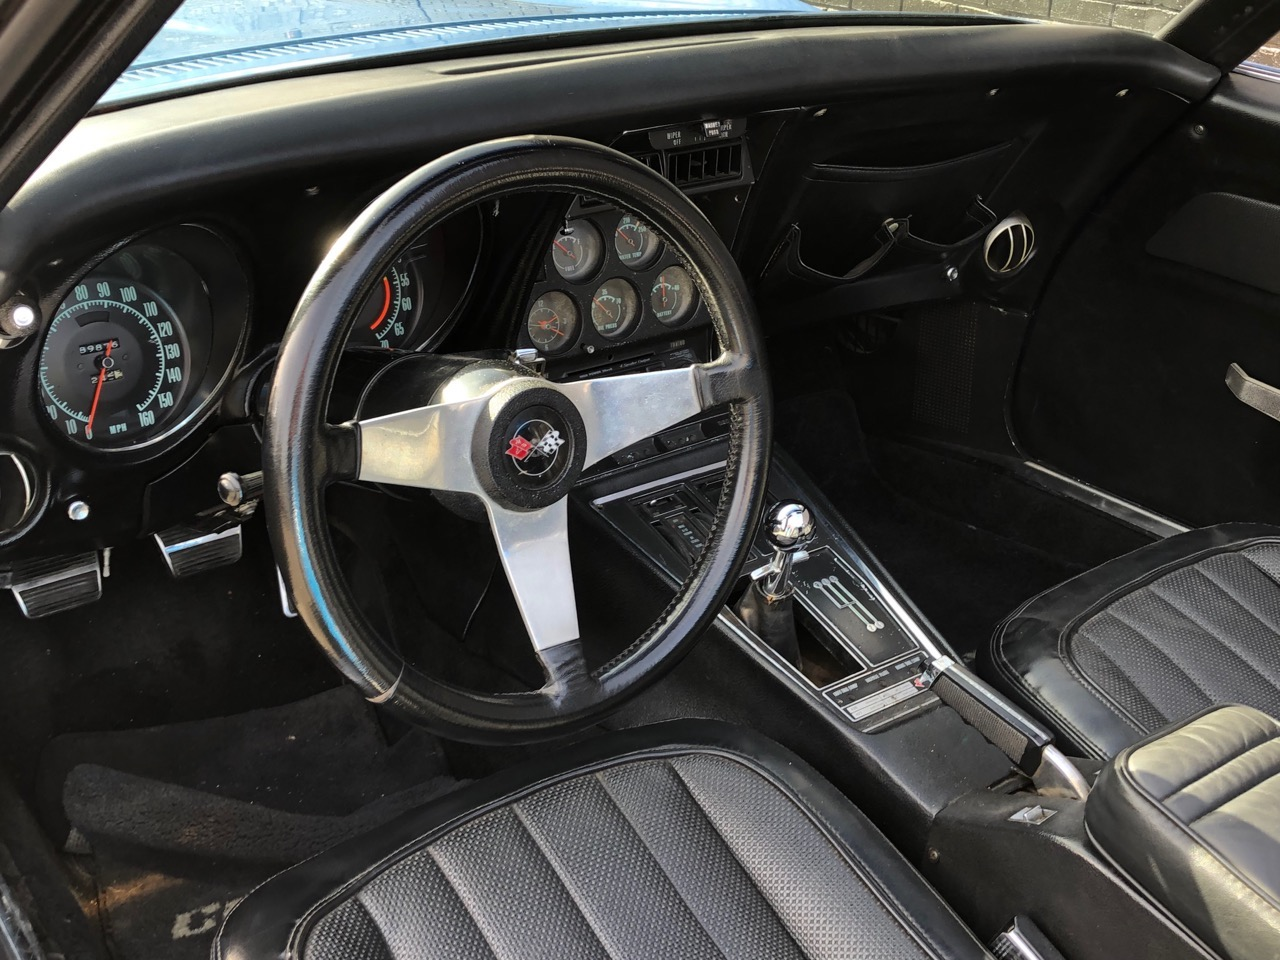 Used 1969 Chevrolet Corvette C3 Stingray For Sale ($33,500